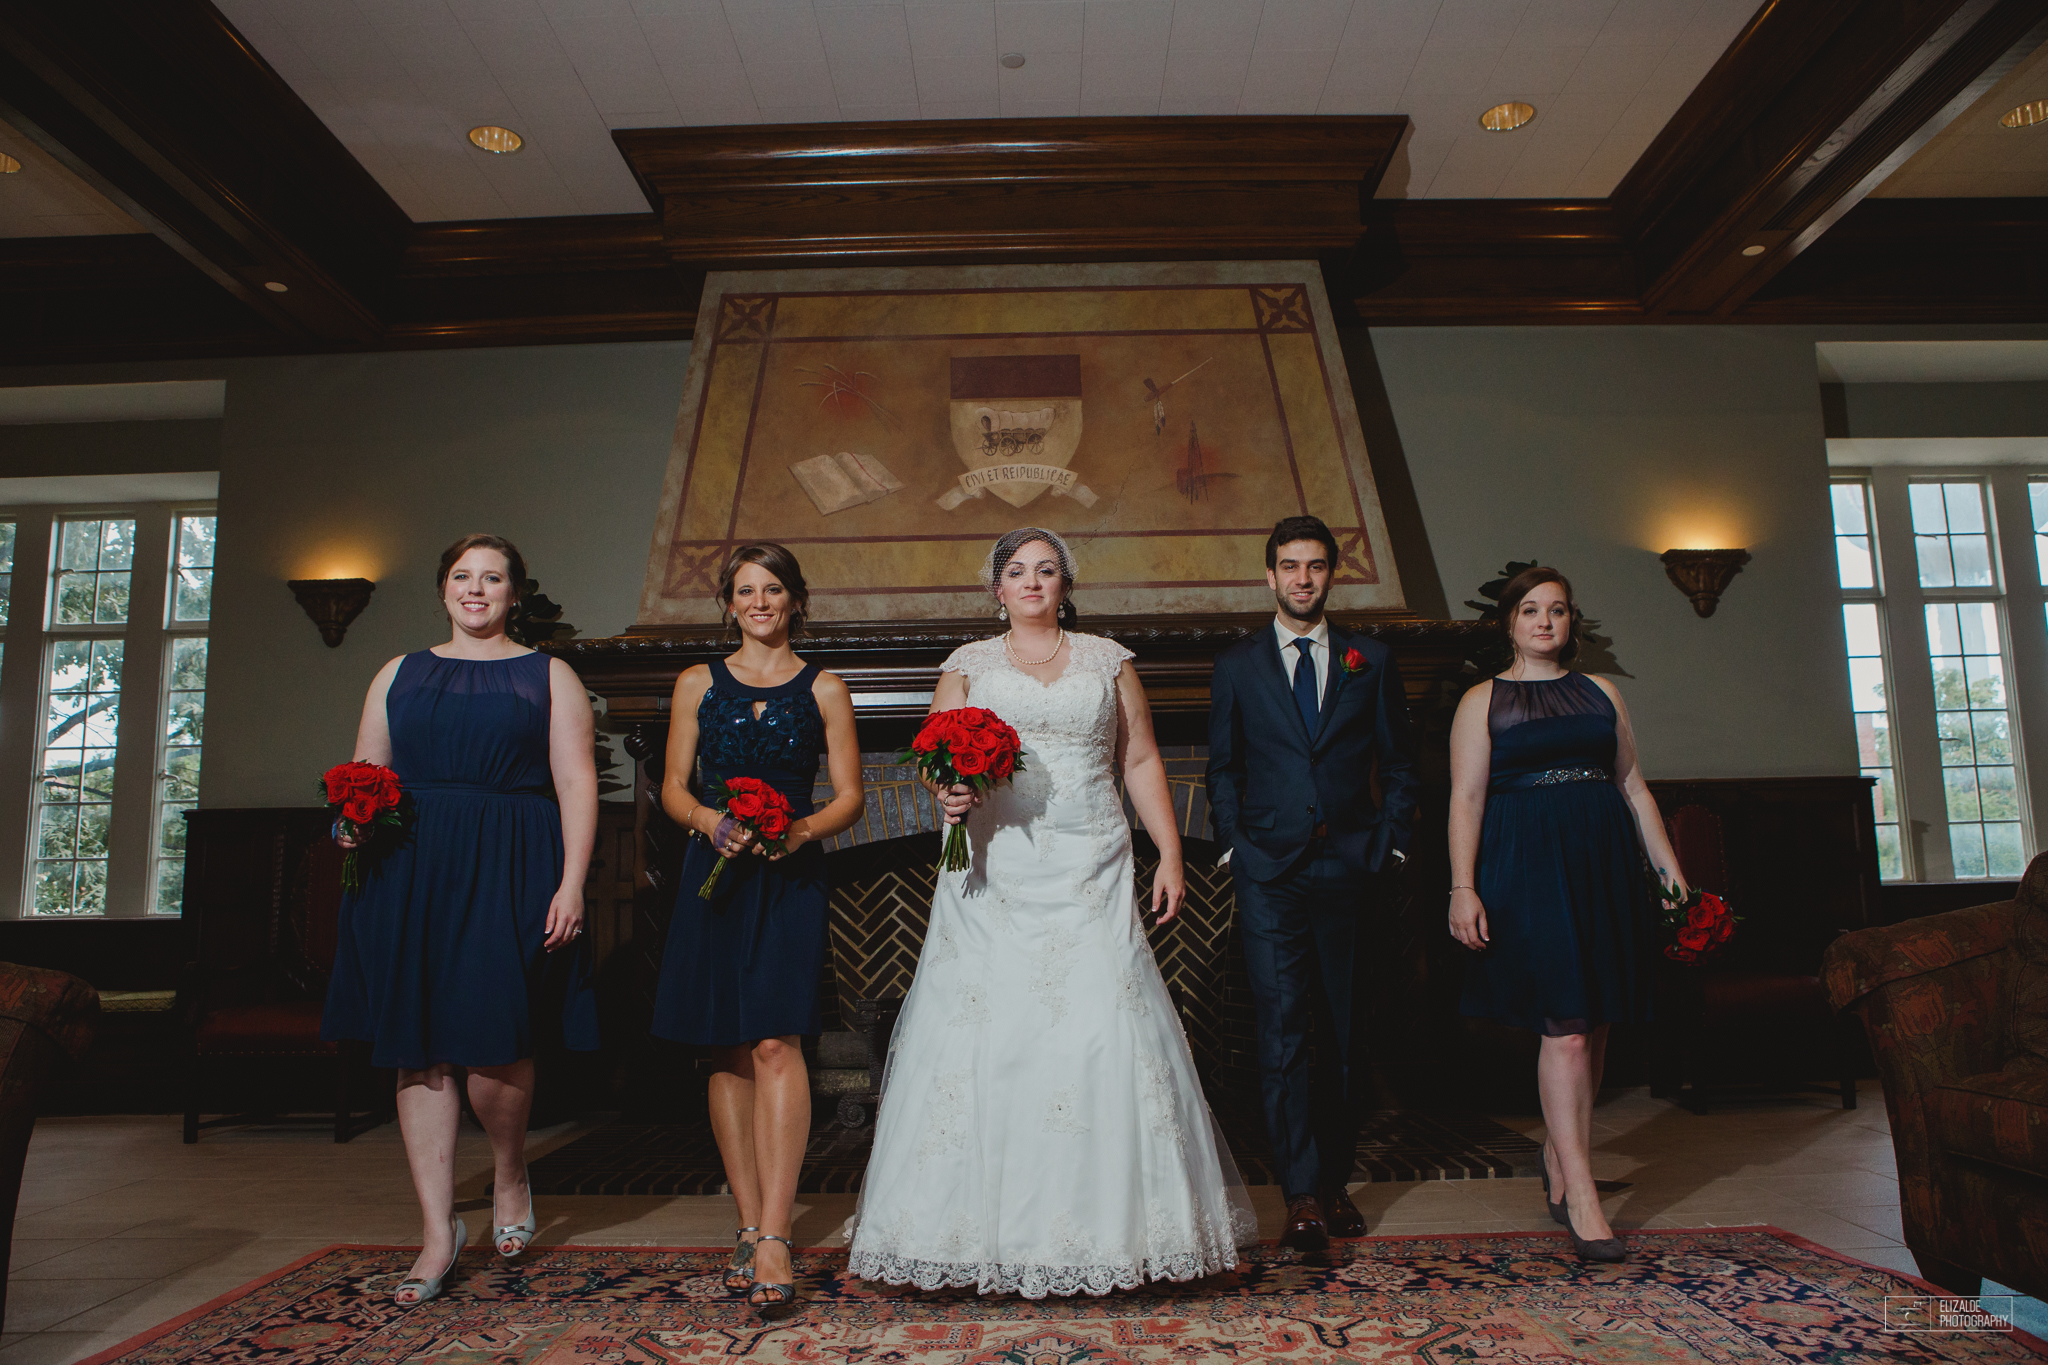 University of Oklahoma_UO_Wedding Photographer_Wedding photography_DFW Wedding Photographer_Elizalde photography_Denton Wedding Photograper  (39 of 100).jpg